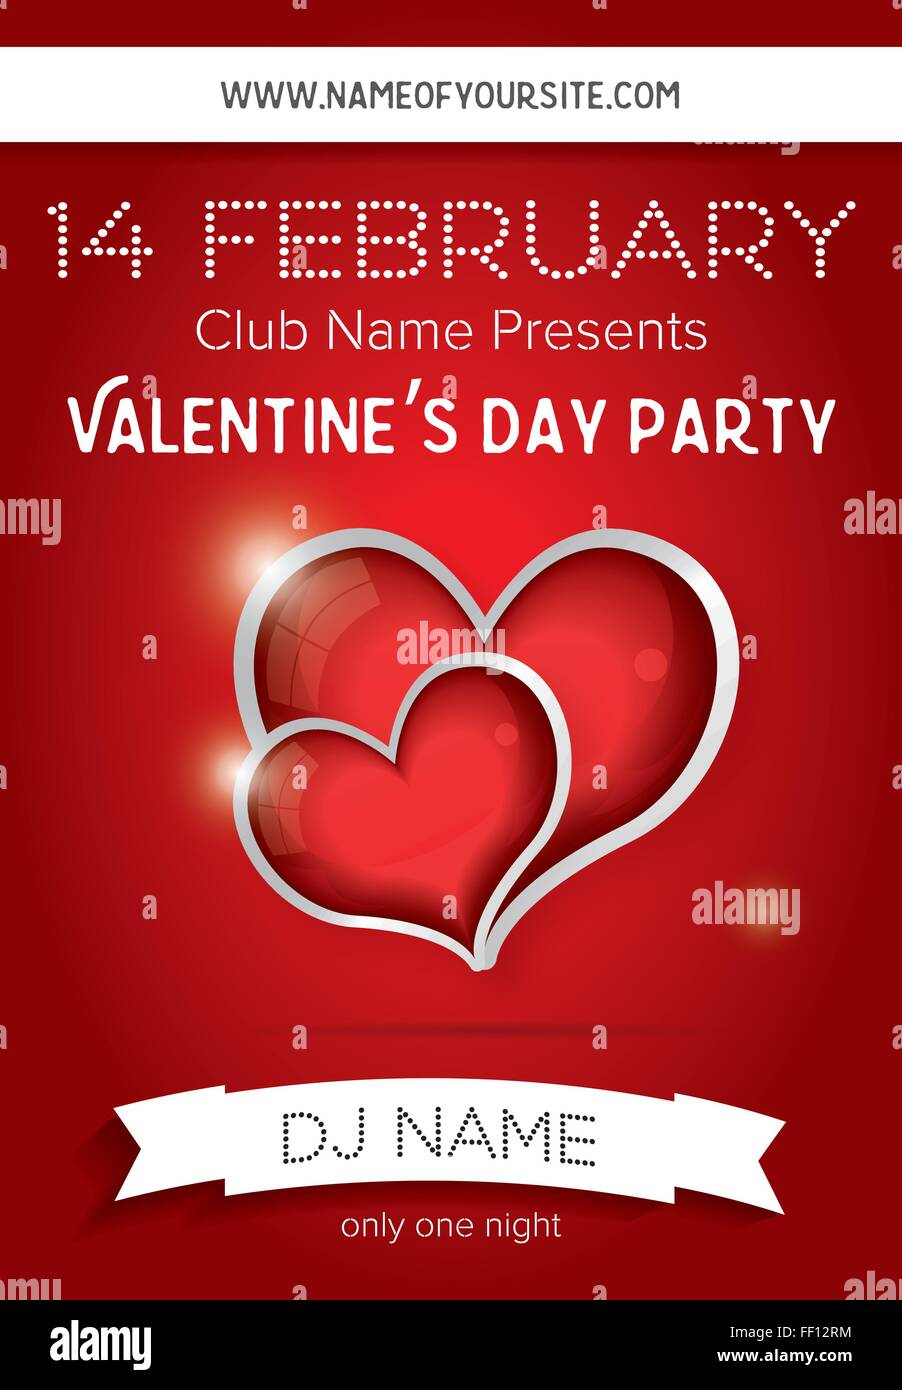 Happy Valentines Day Party Flyer Design Template Vector Stock